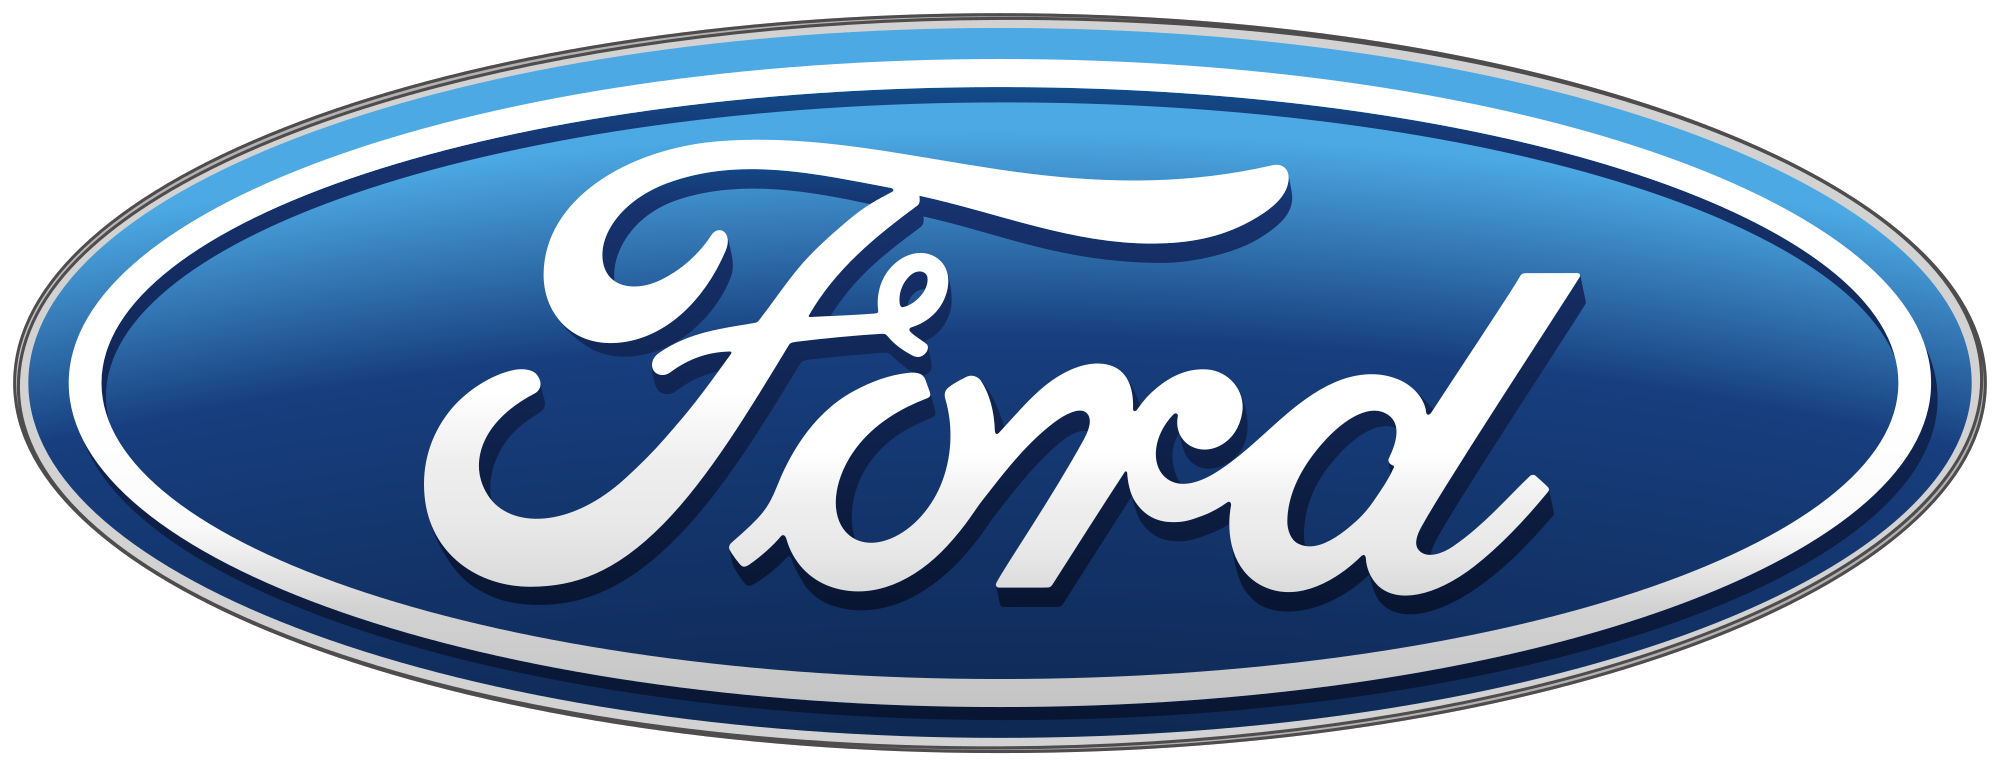 ... stock price range. Source: Ford